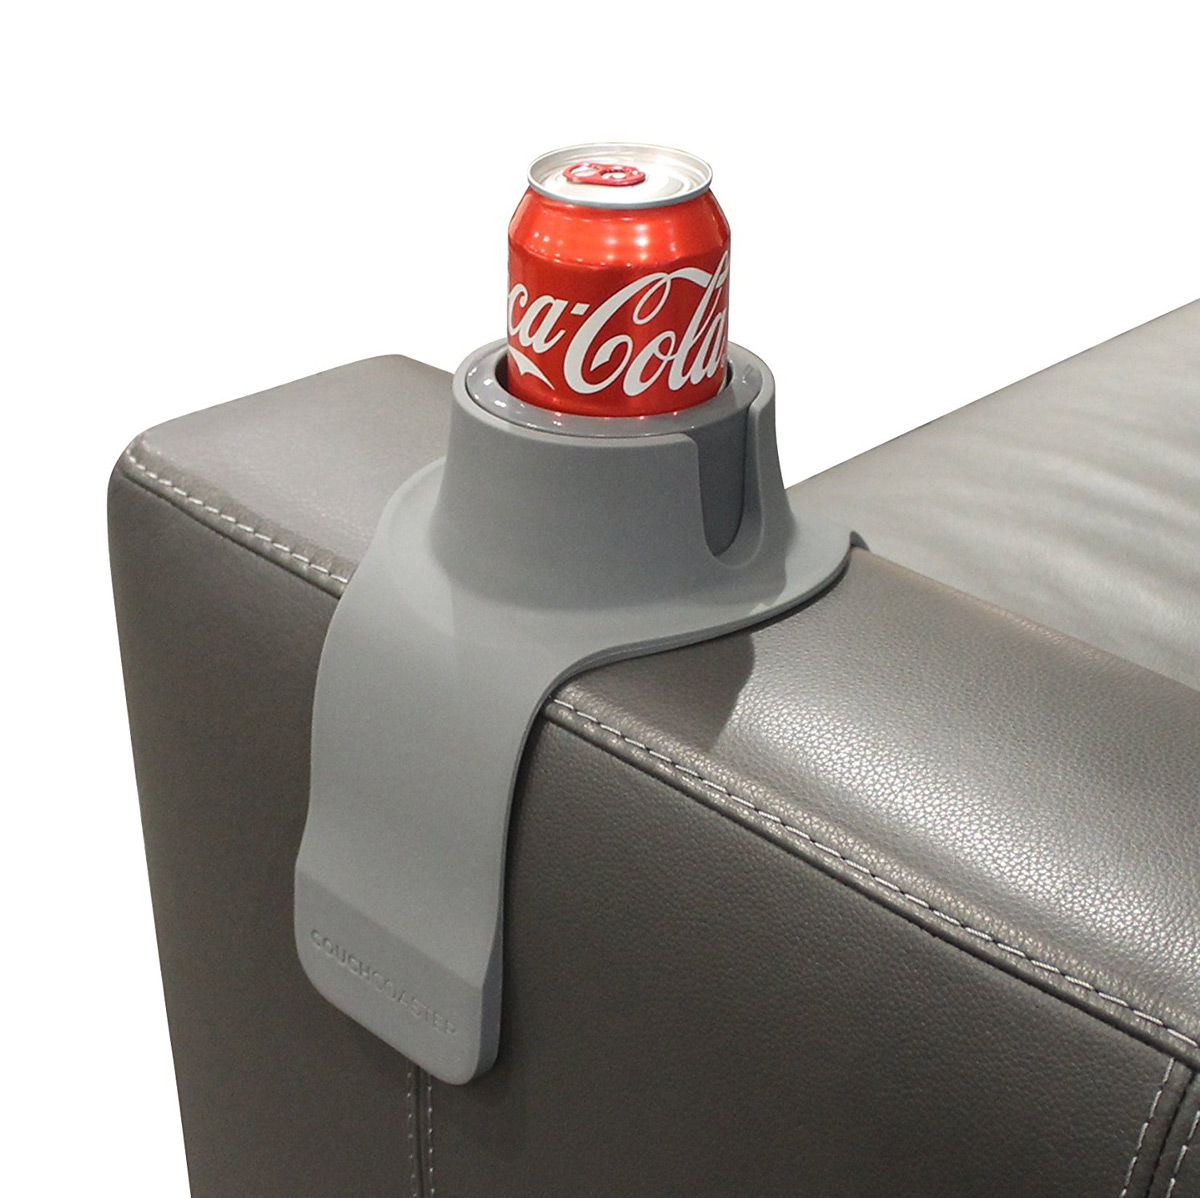 Drink Holder For Sofa 187 Your Sofa S Best Friend Caddy  : couchcoaster ultimate sofa drink holder 2 from 45.77.210.35 size 1200 x 1198 jpeg 243kB